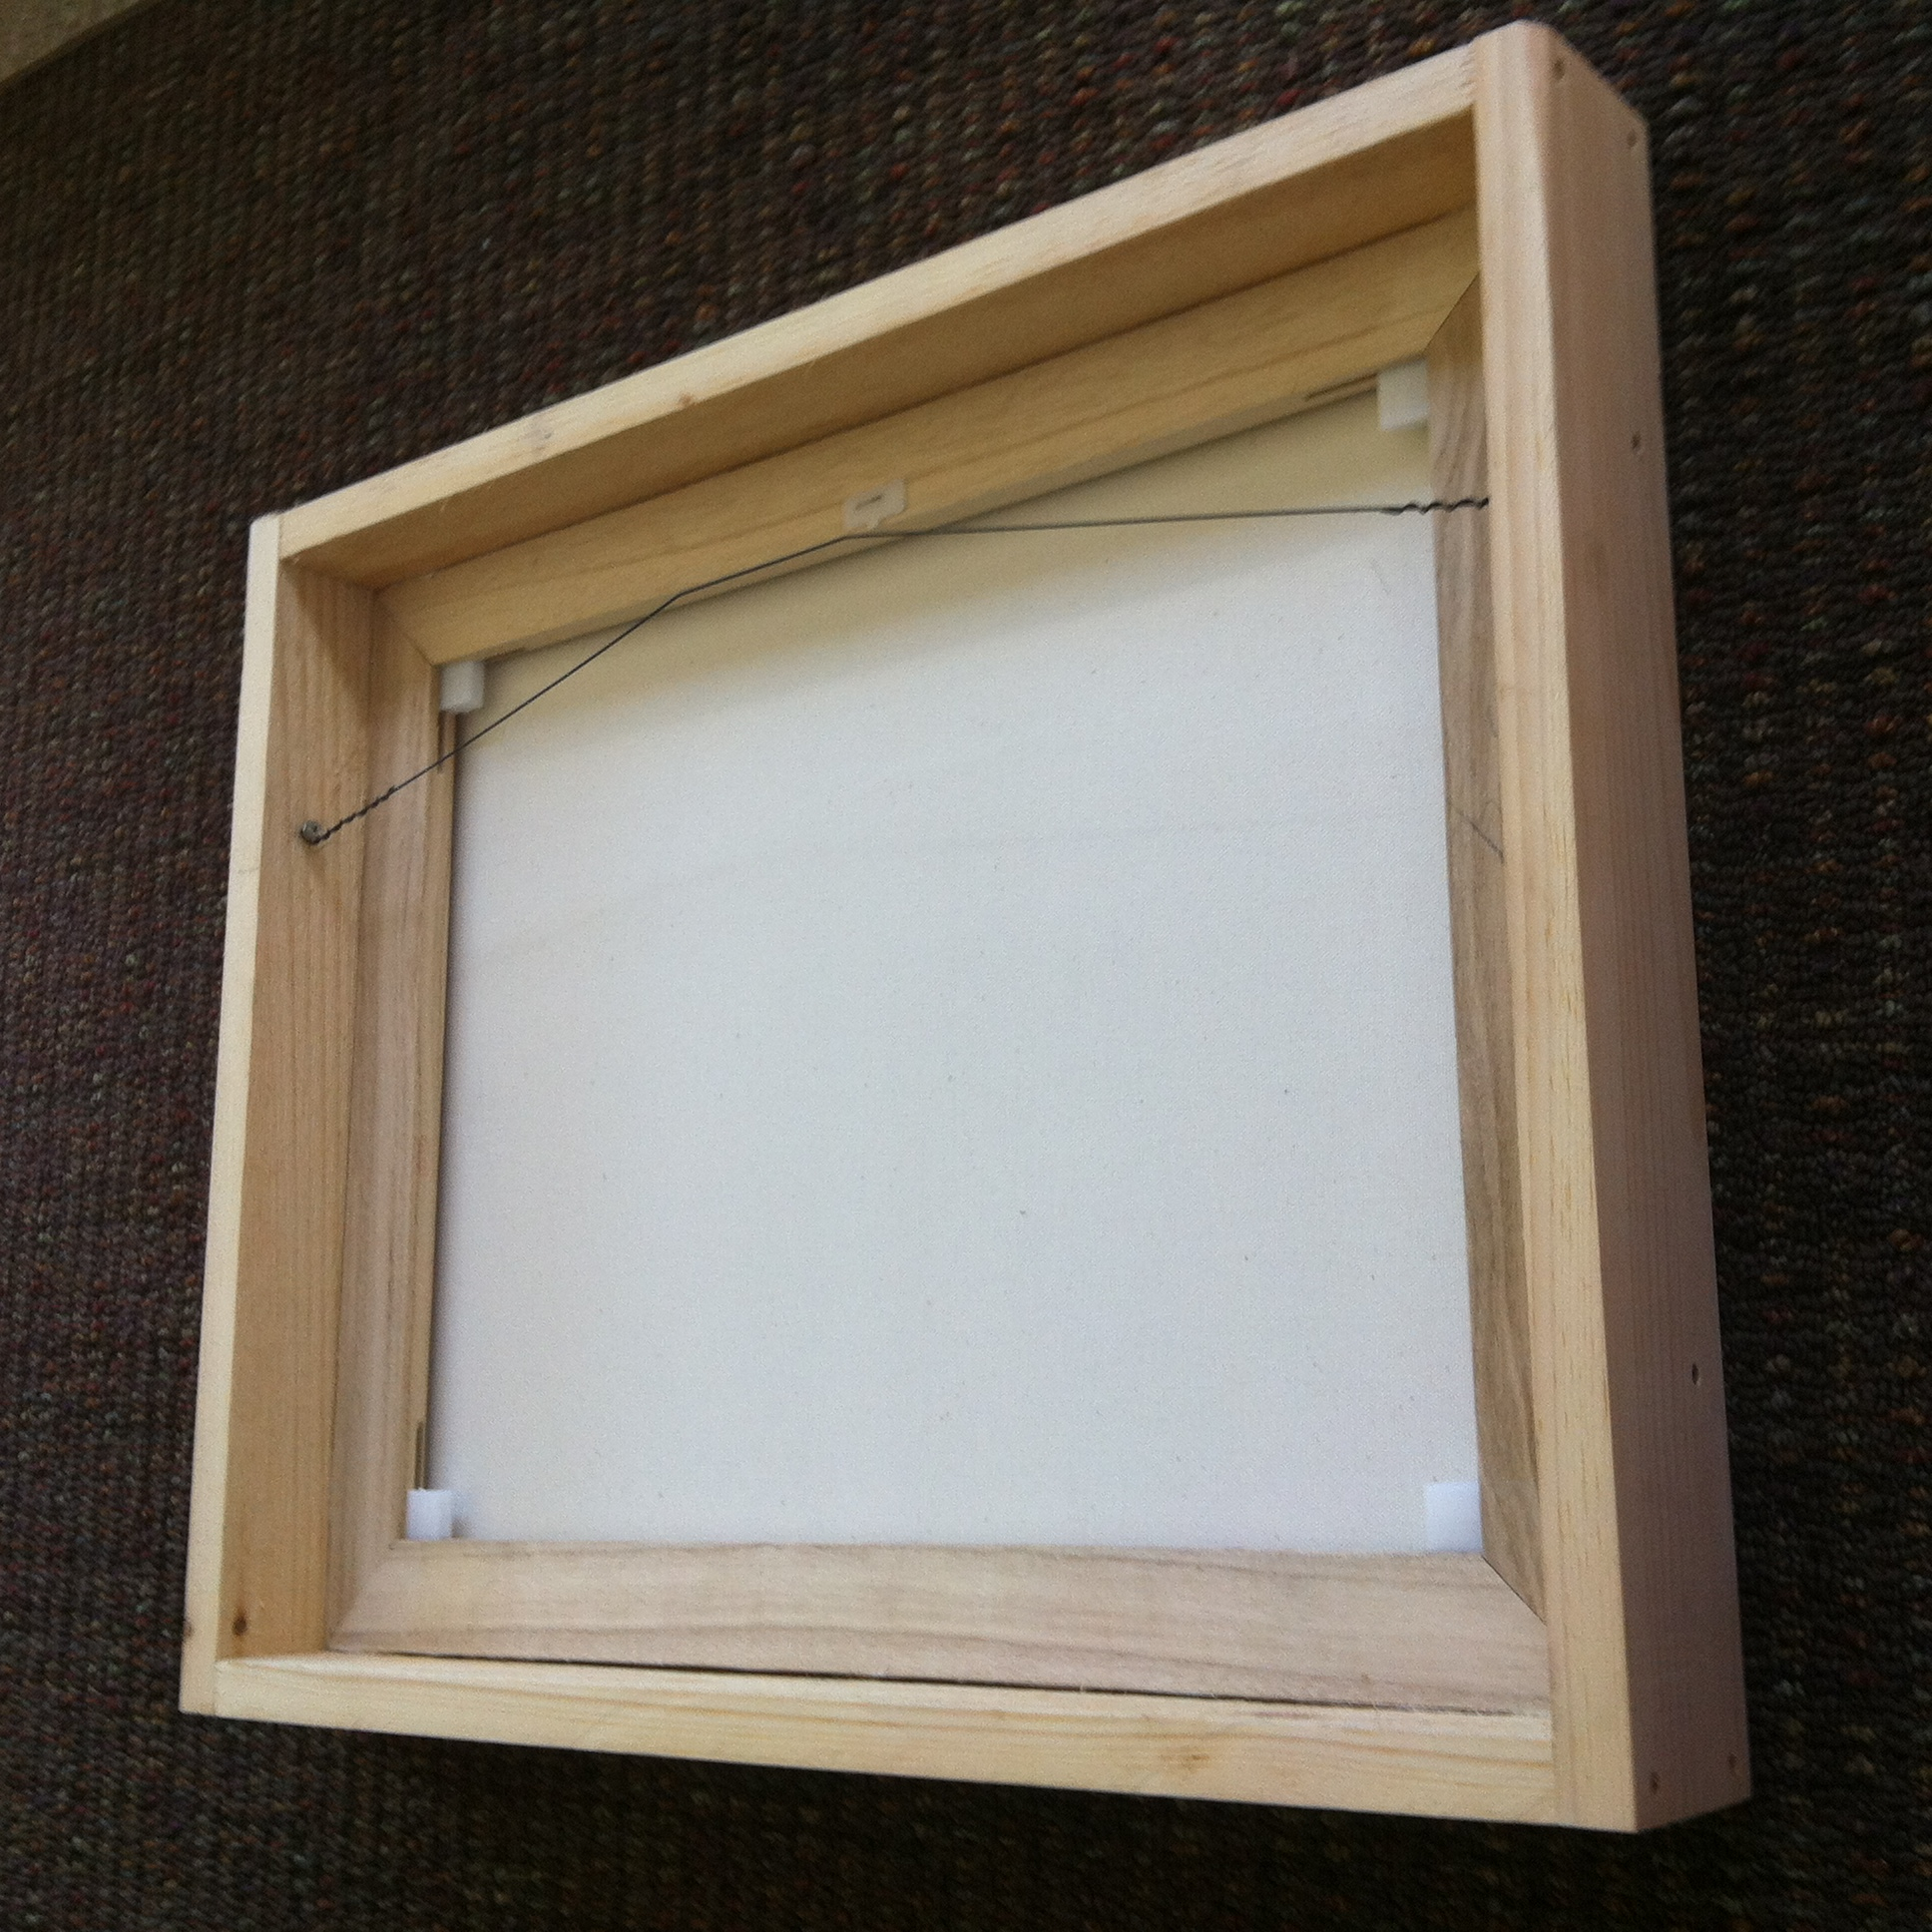 custom made diy wine cork frame we created a do it yourself wall out of recycled maple wood this gorgeous honey stained held 8 5 x 11